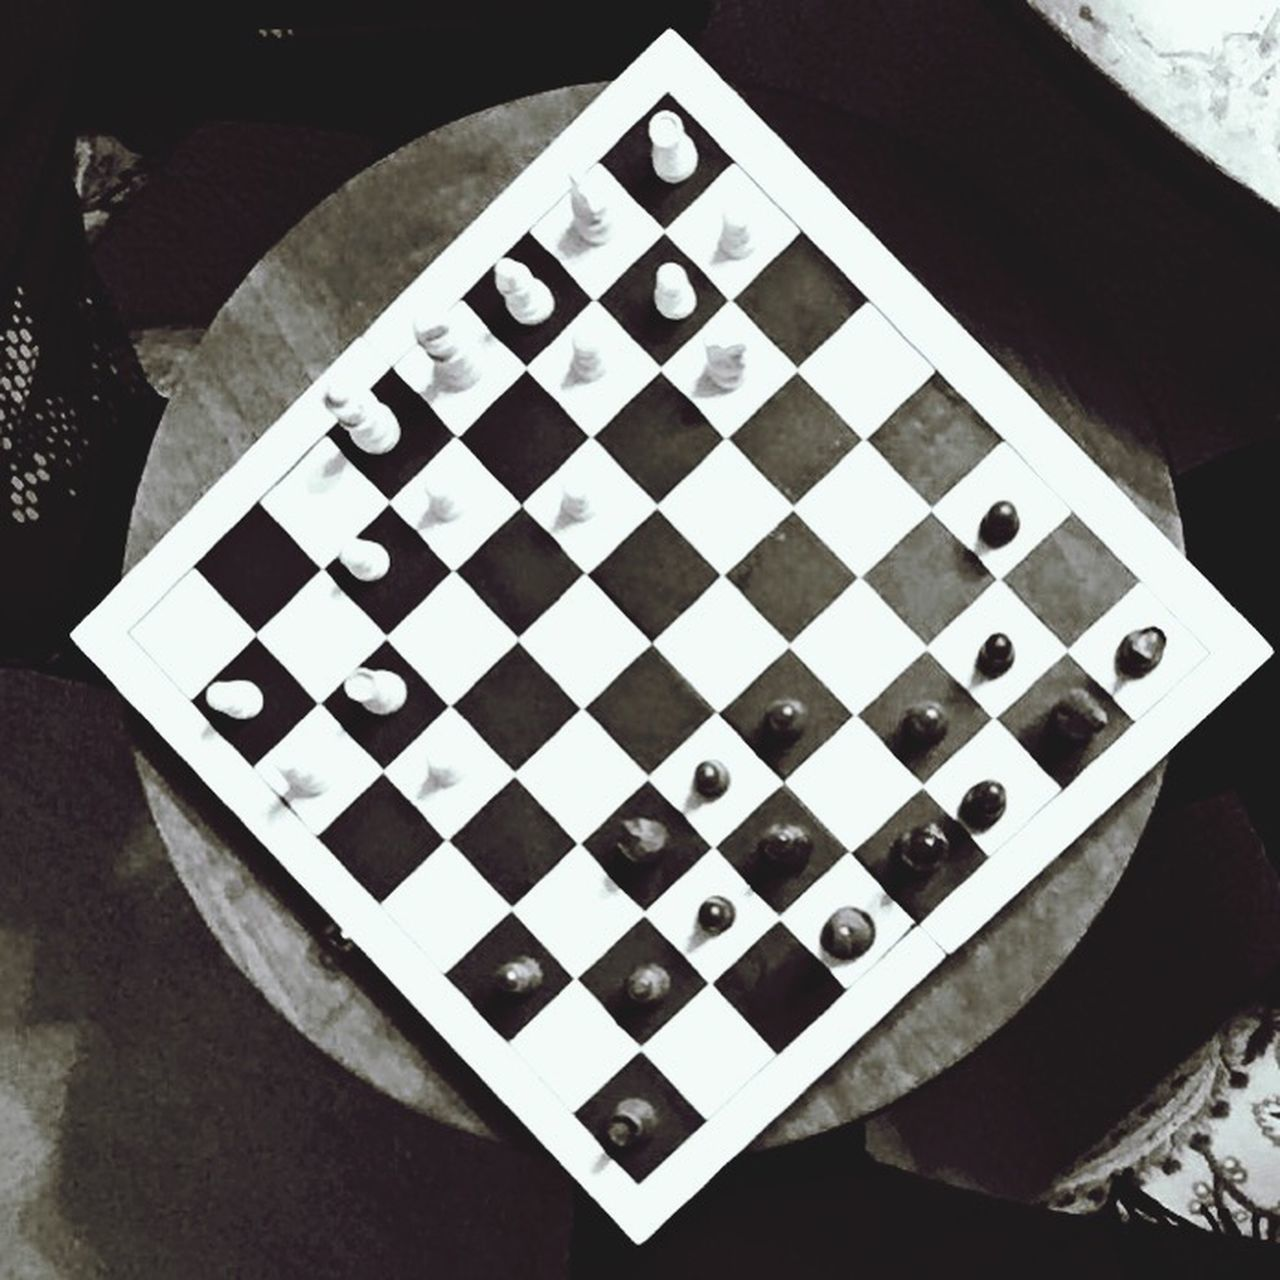 chess, chess piece, leisure games, chess board, board game, strategy, indoors, close-up, challenge, competition, no people, intelligence, day